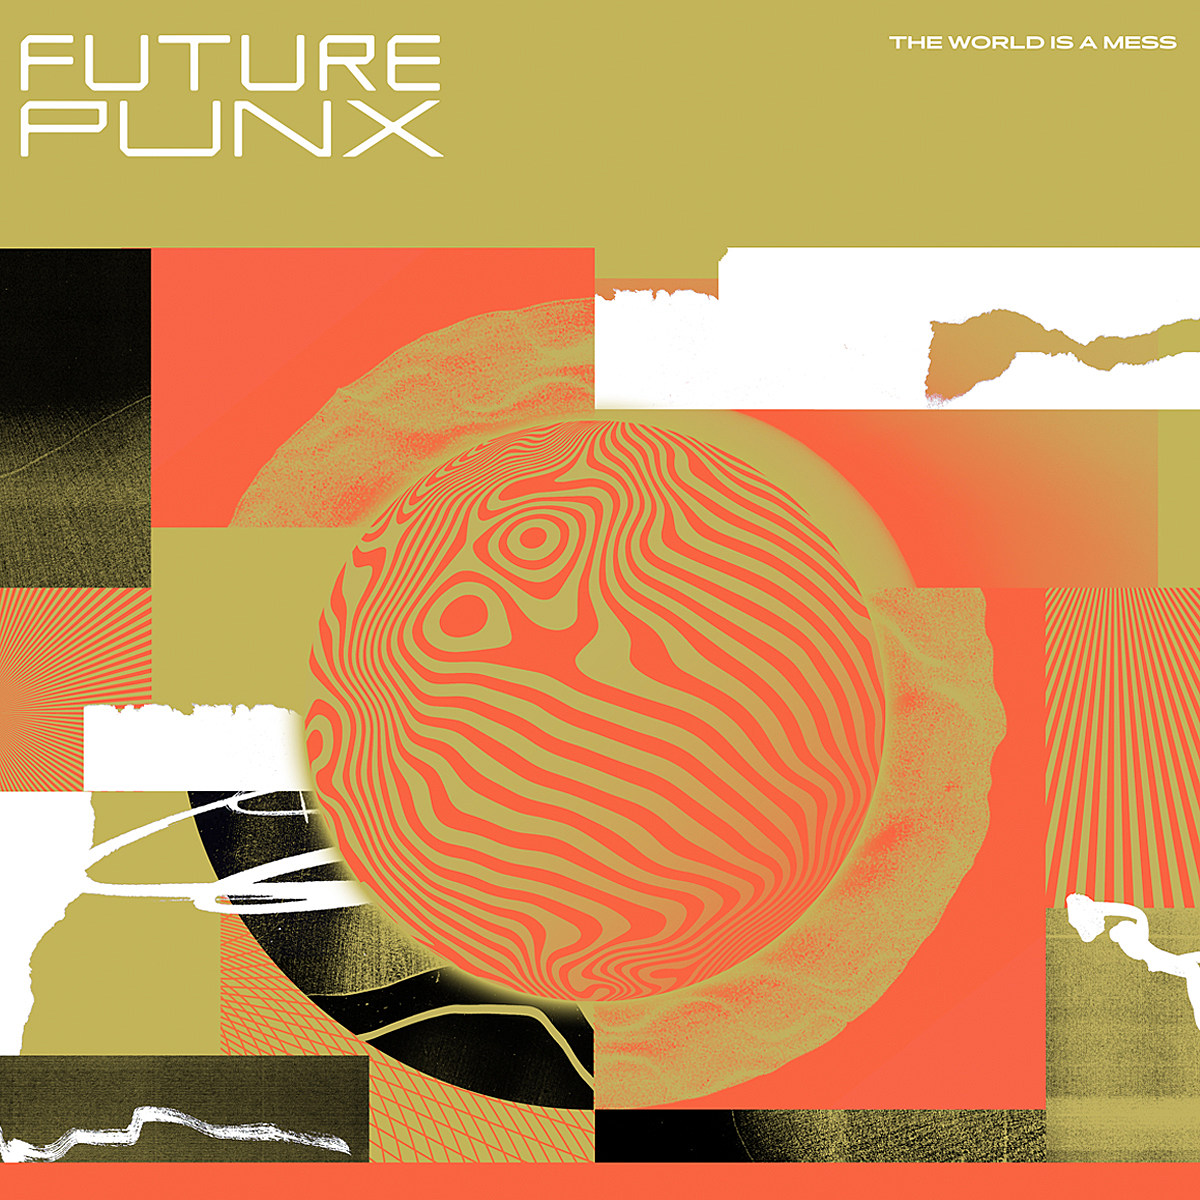 future-punx-the-world-is-a-mess-ep